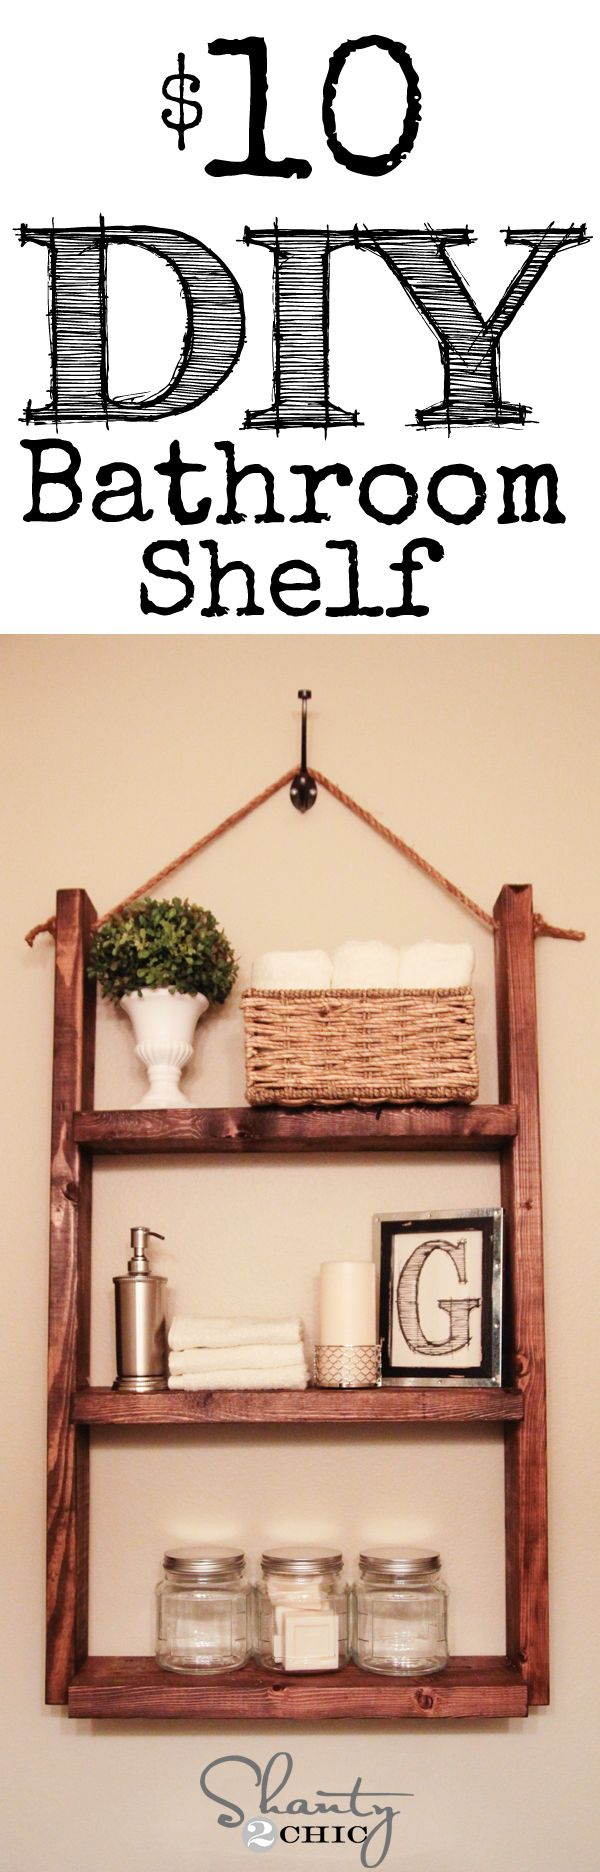 Bathroom diy decorations - 25 Best Ideas About Diy Bathroom Decor On Pinterest Bathroom Storage Diy Shelves And Diy Storage